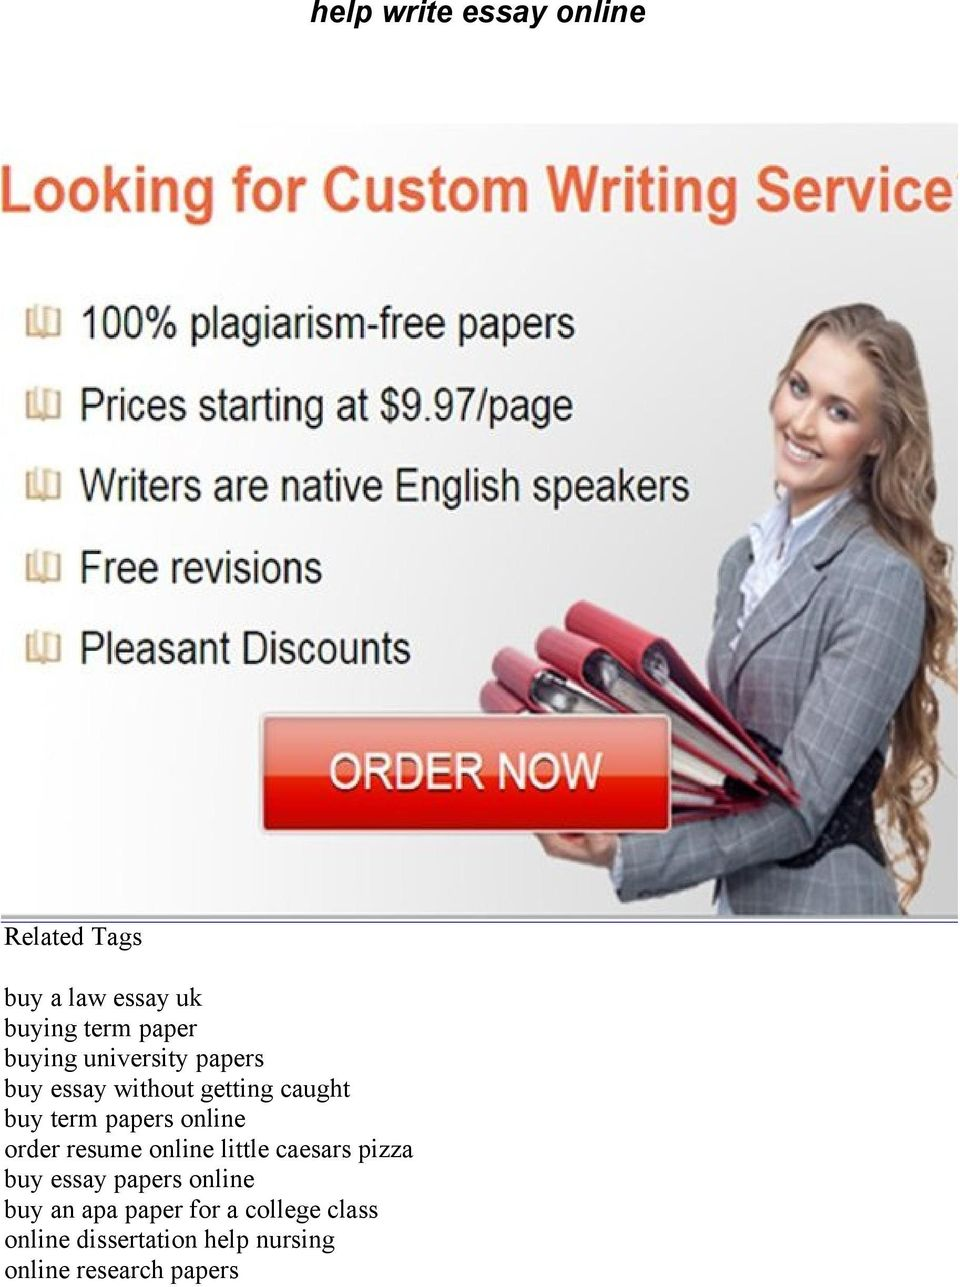 English Literature Essays Online Order Resume Online Little Caesars Pizza Buy Essay Papers Online Buy Fifth Business Essays also Essay Topics High School Help Write Essay Online  Pdf Narrative Essay Thesis Statement Examples